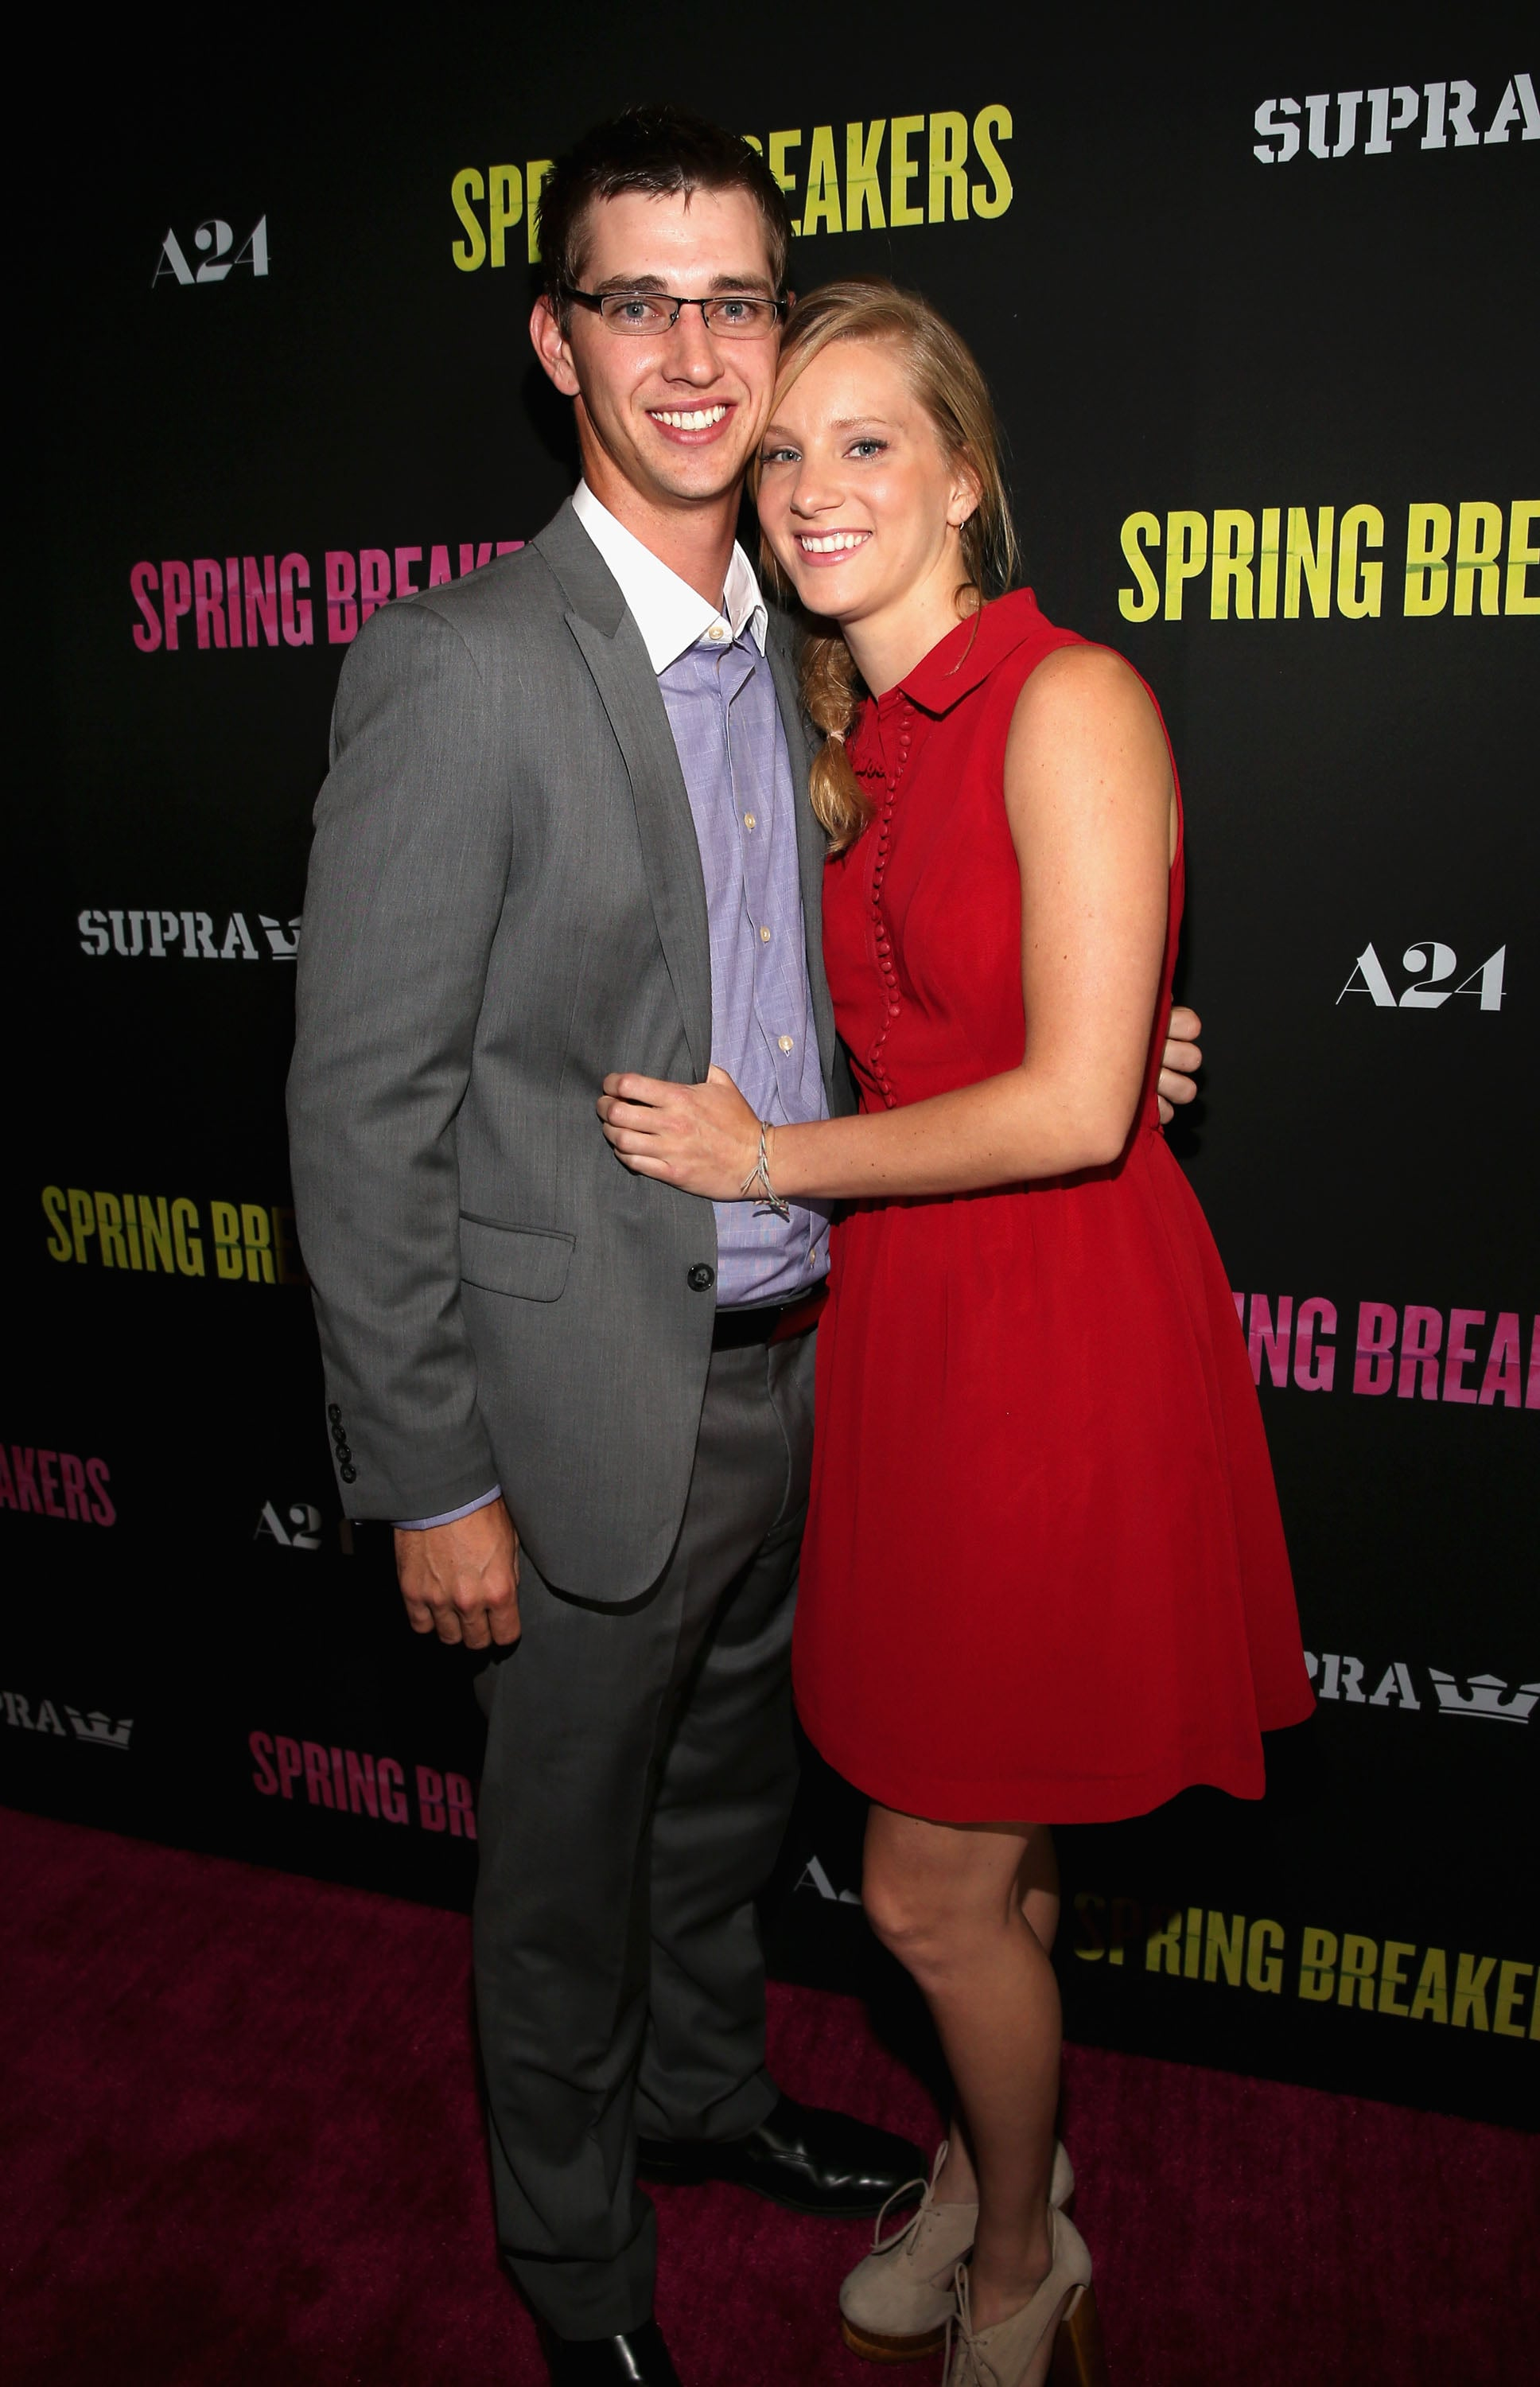 On Sept. 28, Heather Morris and longtime love Taylor Hubbell welcomed their first child, Elijah.